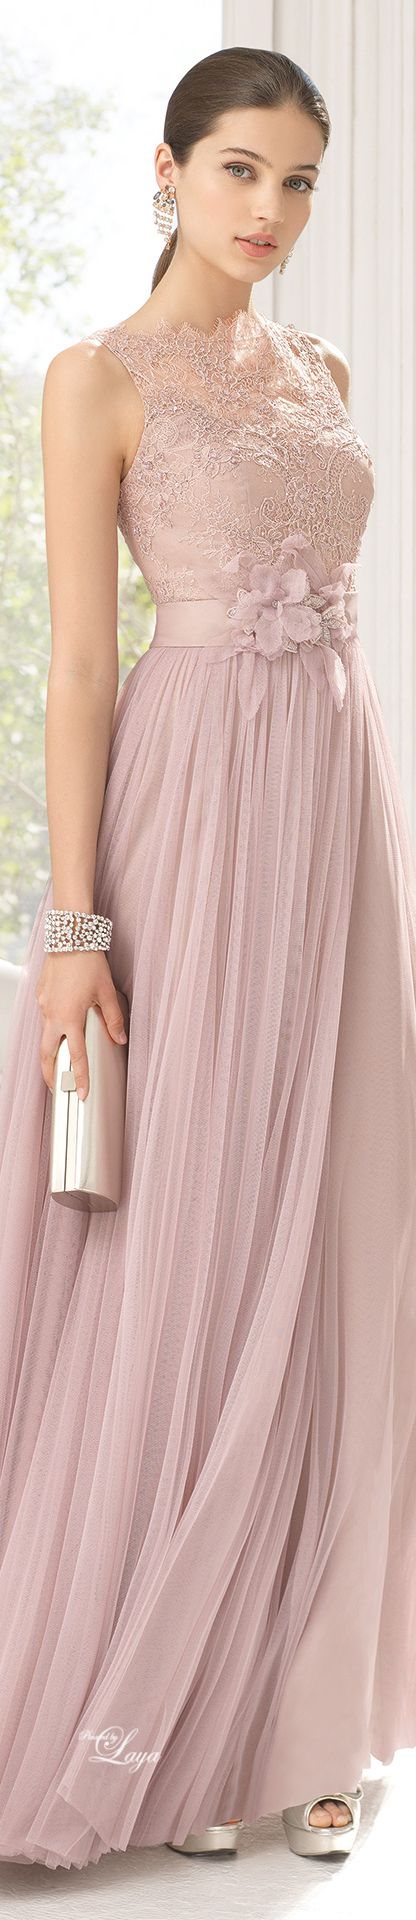 best mariage images on pinterest long prom dresses weddings